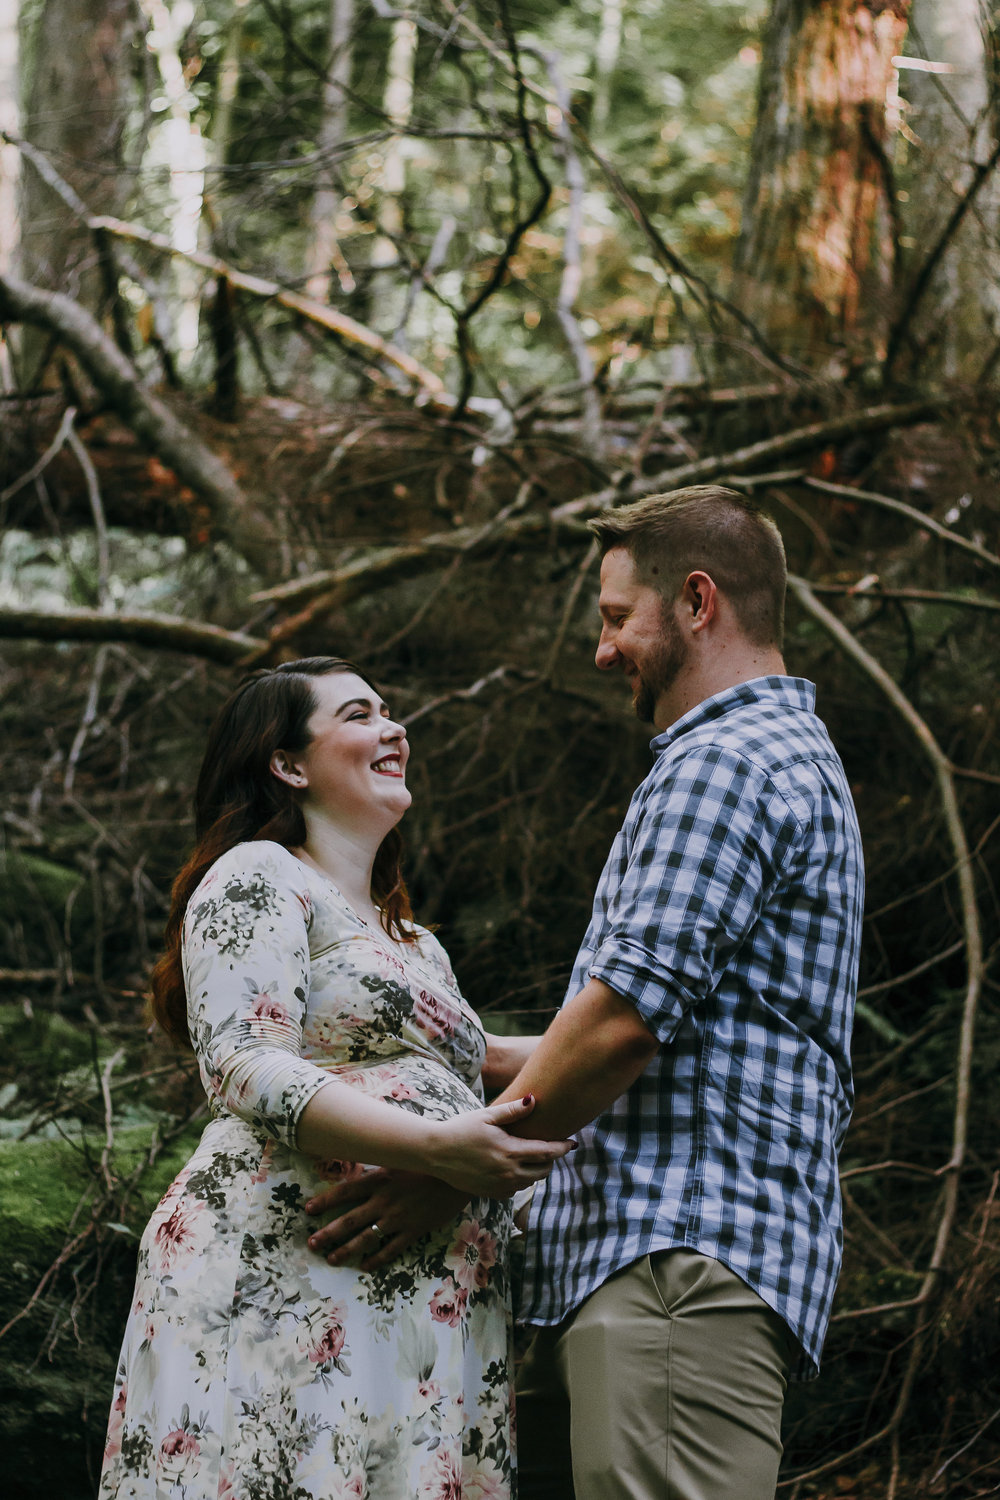 Couple looking at each other, Artistic + Woodsy Maternity Session | Sarah P Thomas Photography